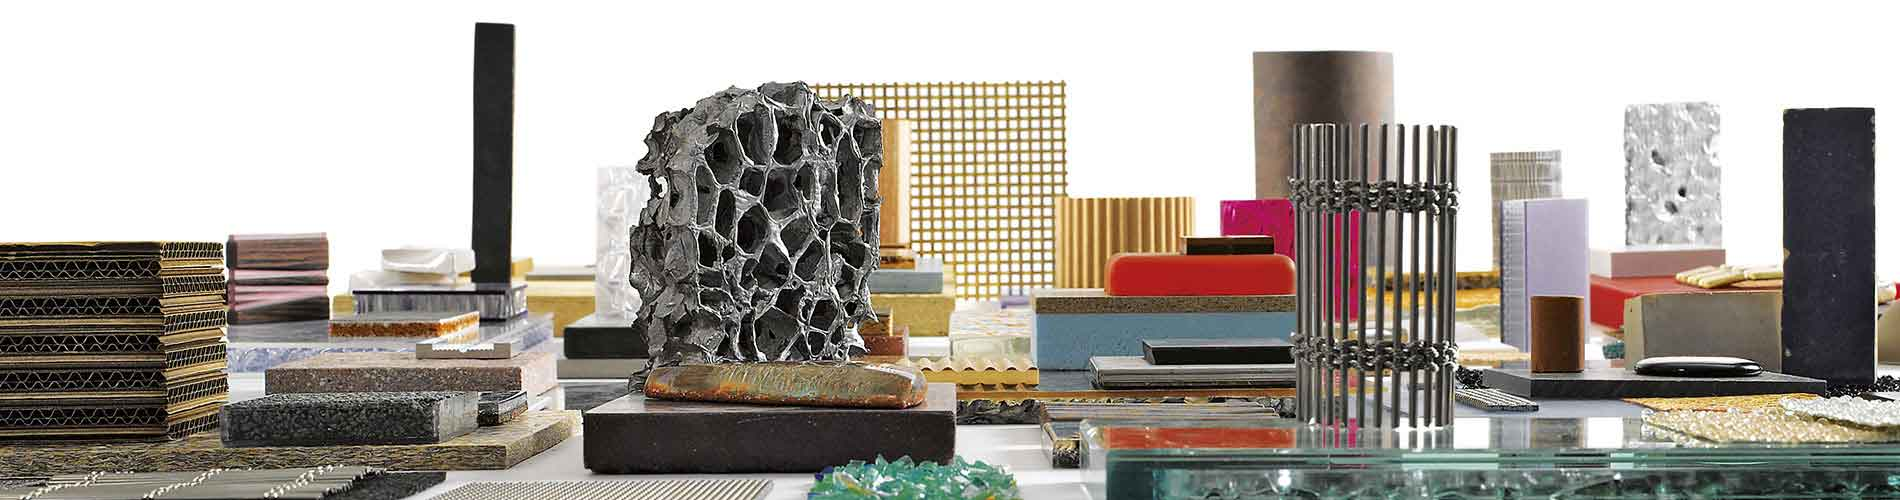 materiali innovativi in ceramica e altro